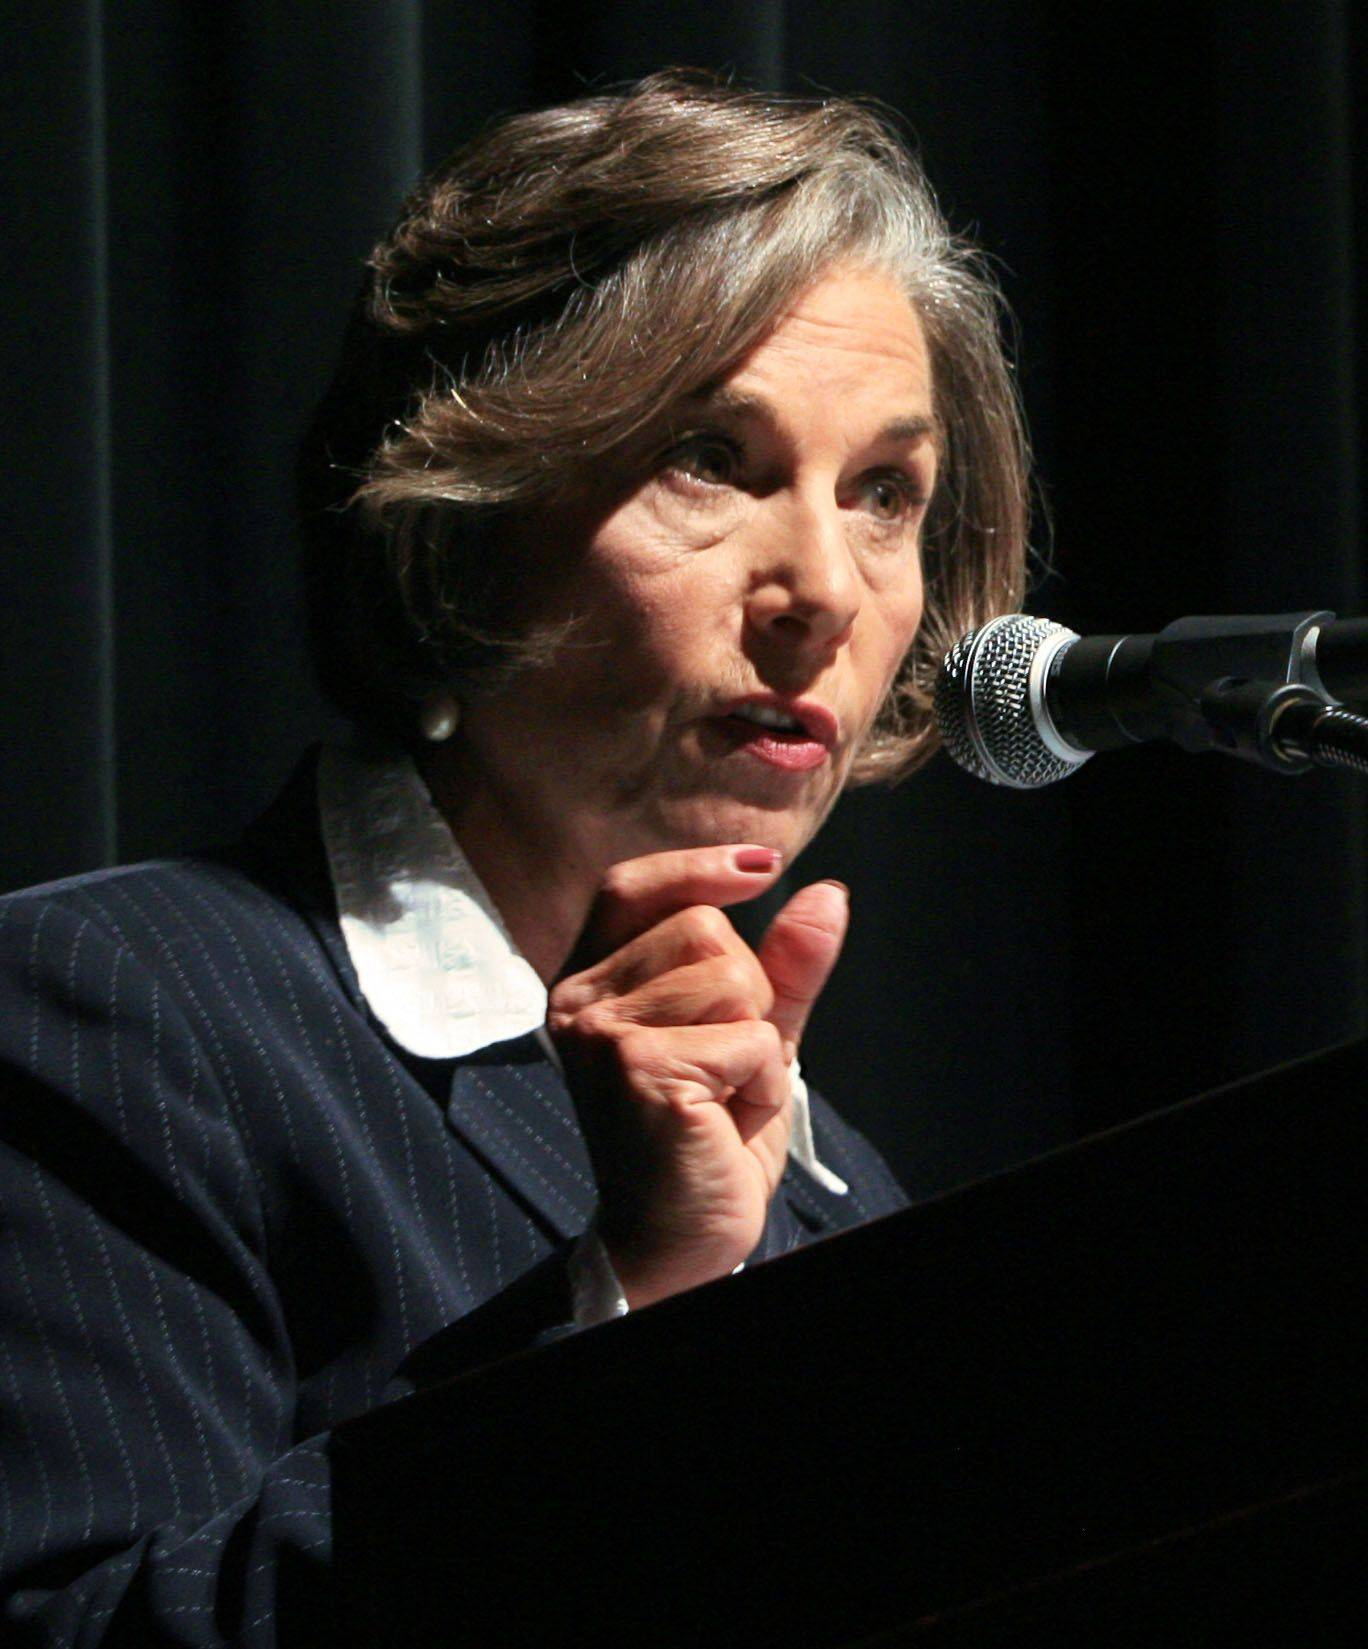 Schakowsky: Photos of bin Laden's body too graphic for release